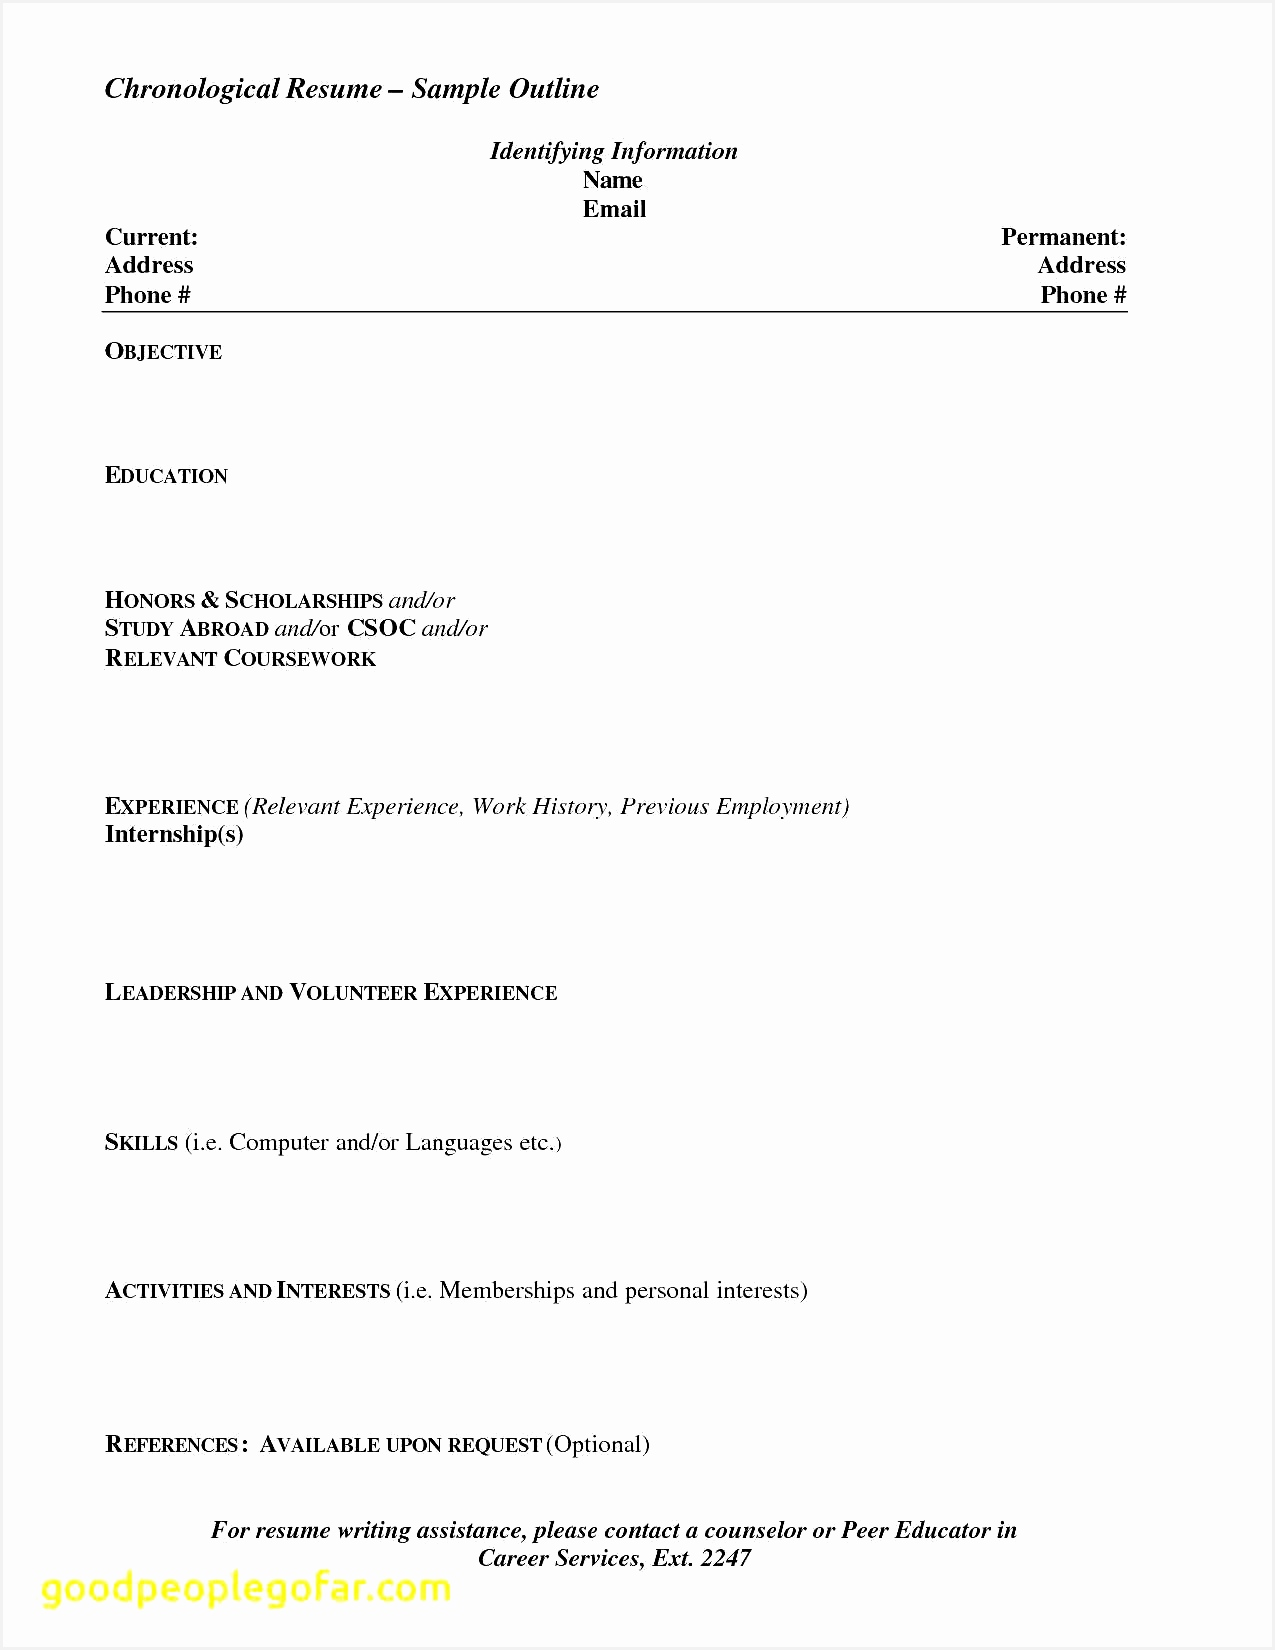 Word Document Resume Template Lovely How to format A Cover Letter Best formatted Resume 0d16501275